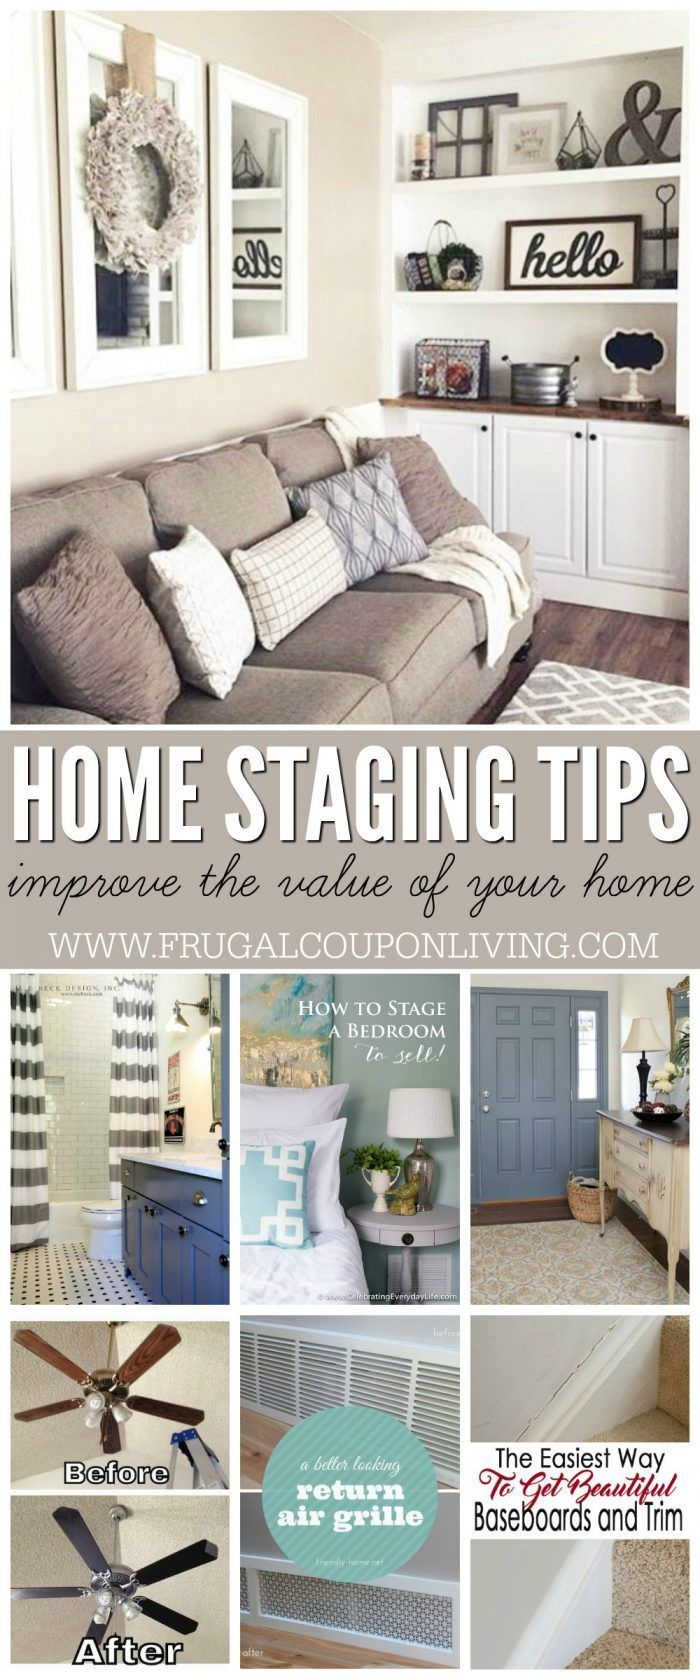 Home Staging Tips and Ideas   Improve the Value of Your Home. Best 25  Home staging tips ideas on Pinterest   Home staging